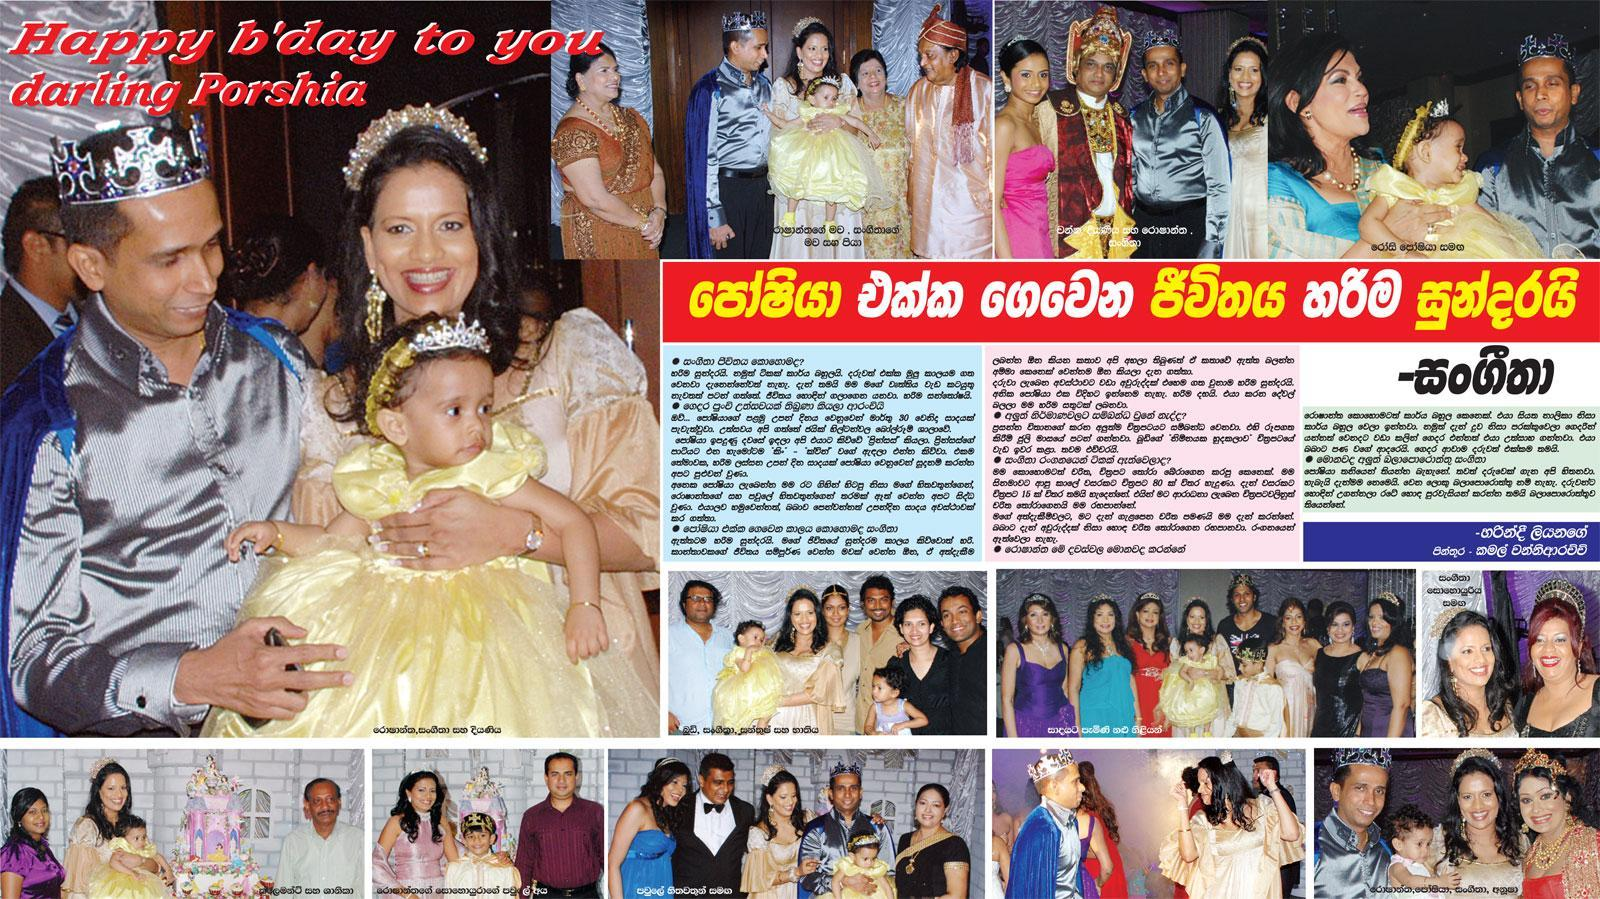 Sangeetha Weeraratne and baby